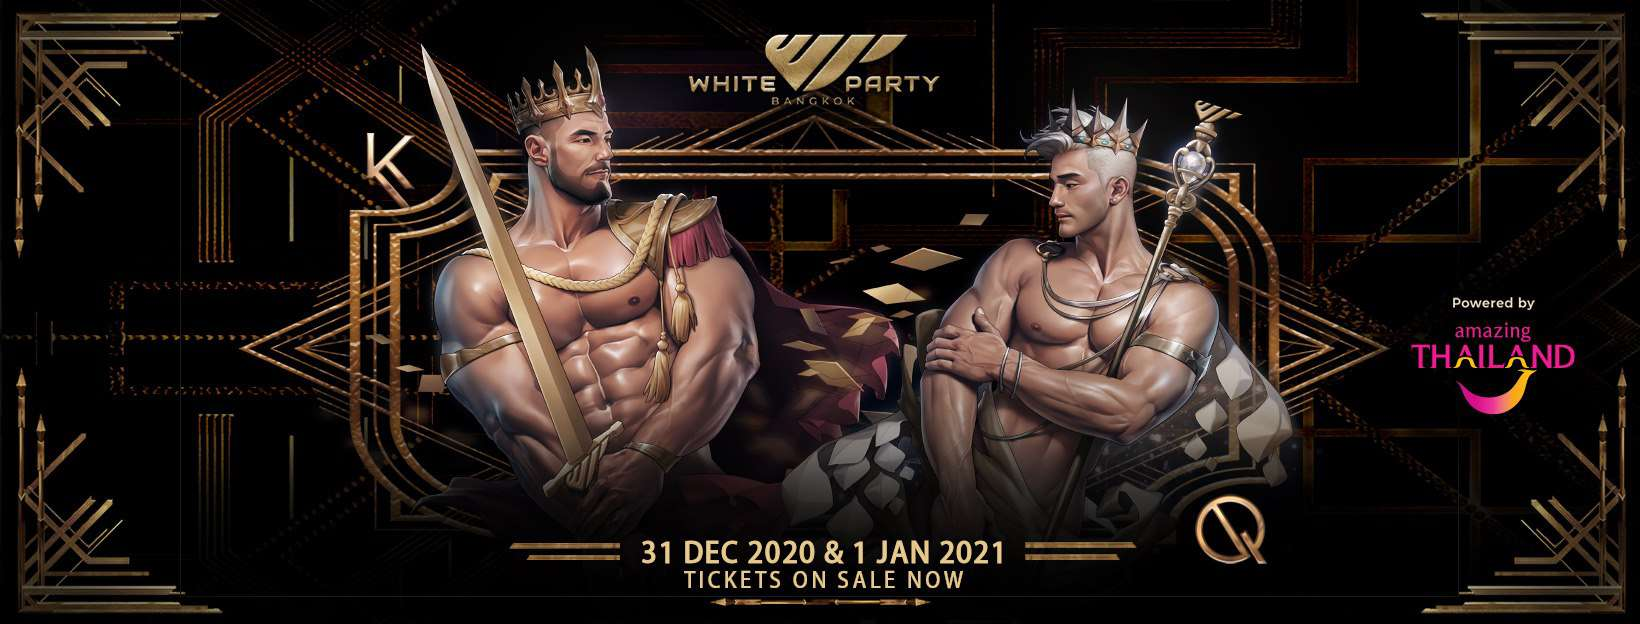 White Party BANGKOK 2021